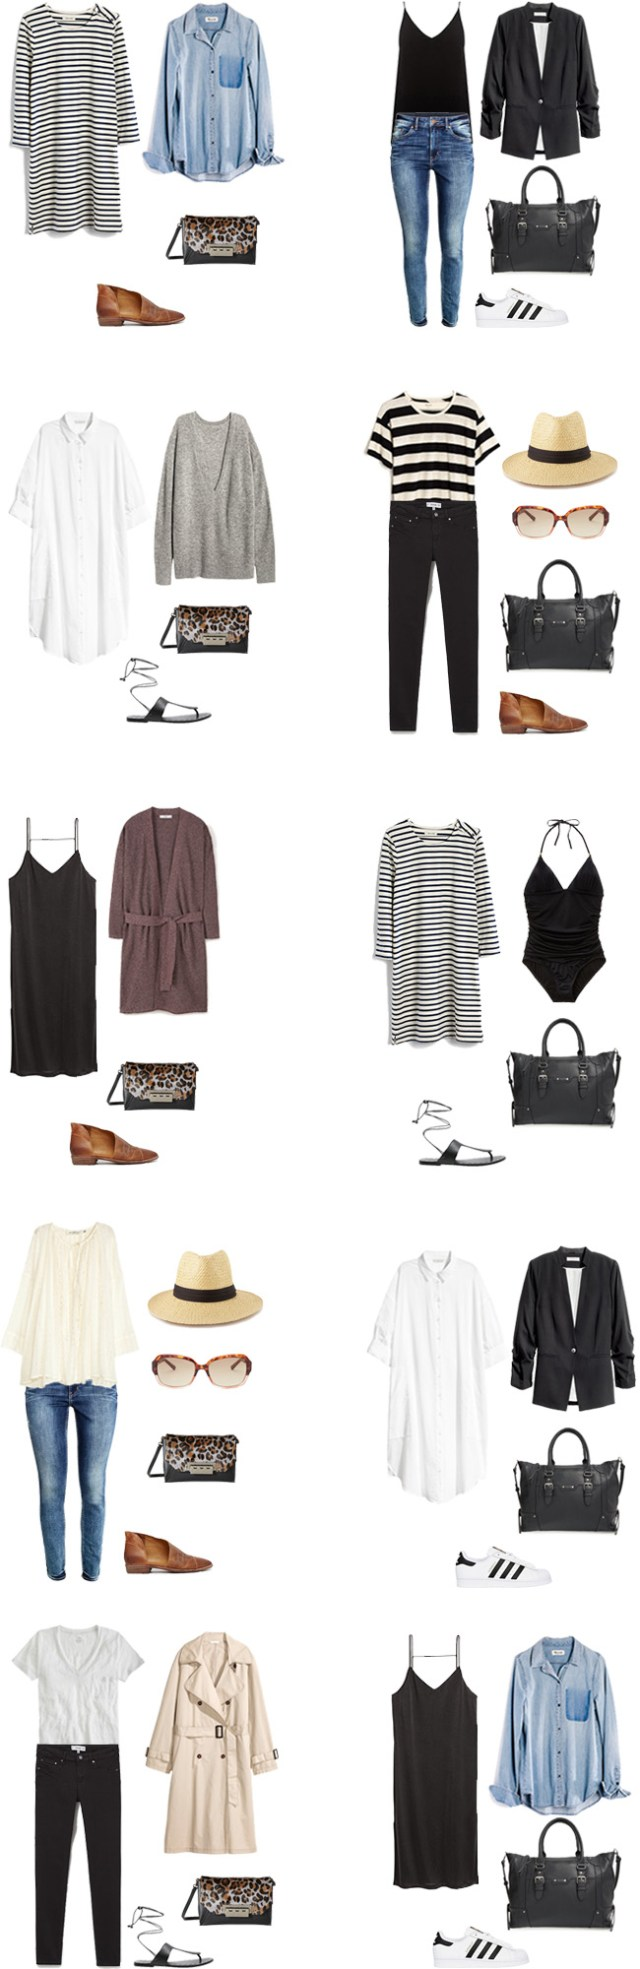 What to Wear in Italy and on a Mediterranean Cruise Outfit Options 11-20 #travellight #packinglight #traveltips #travel